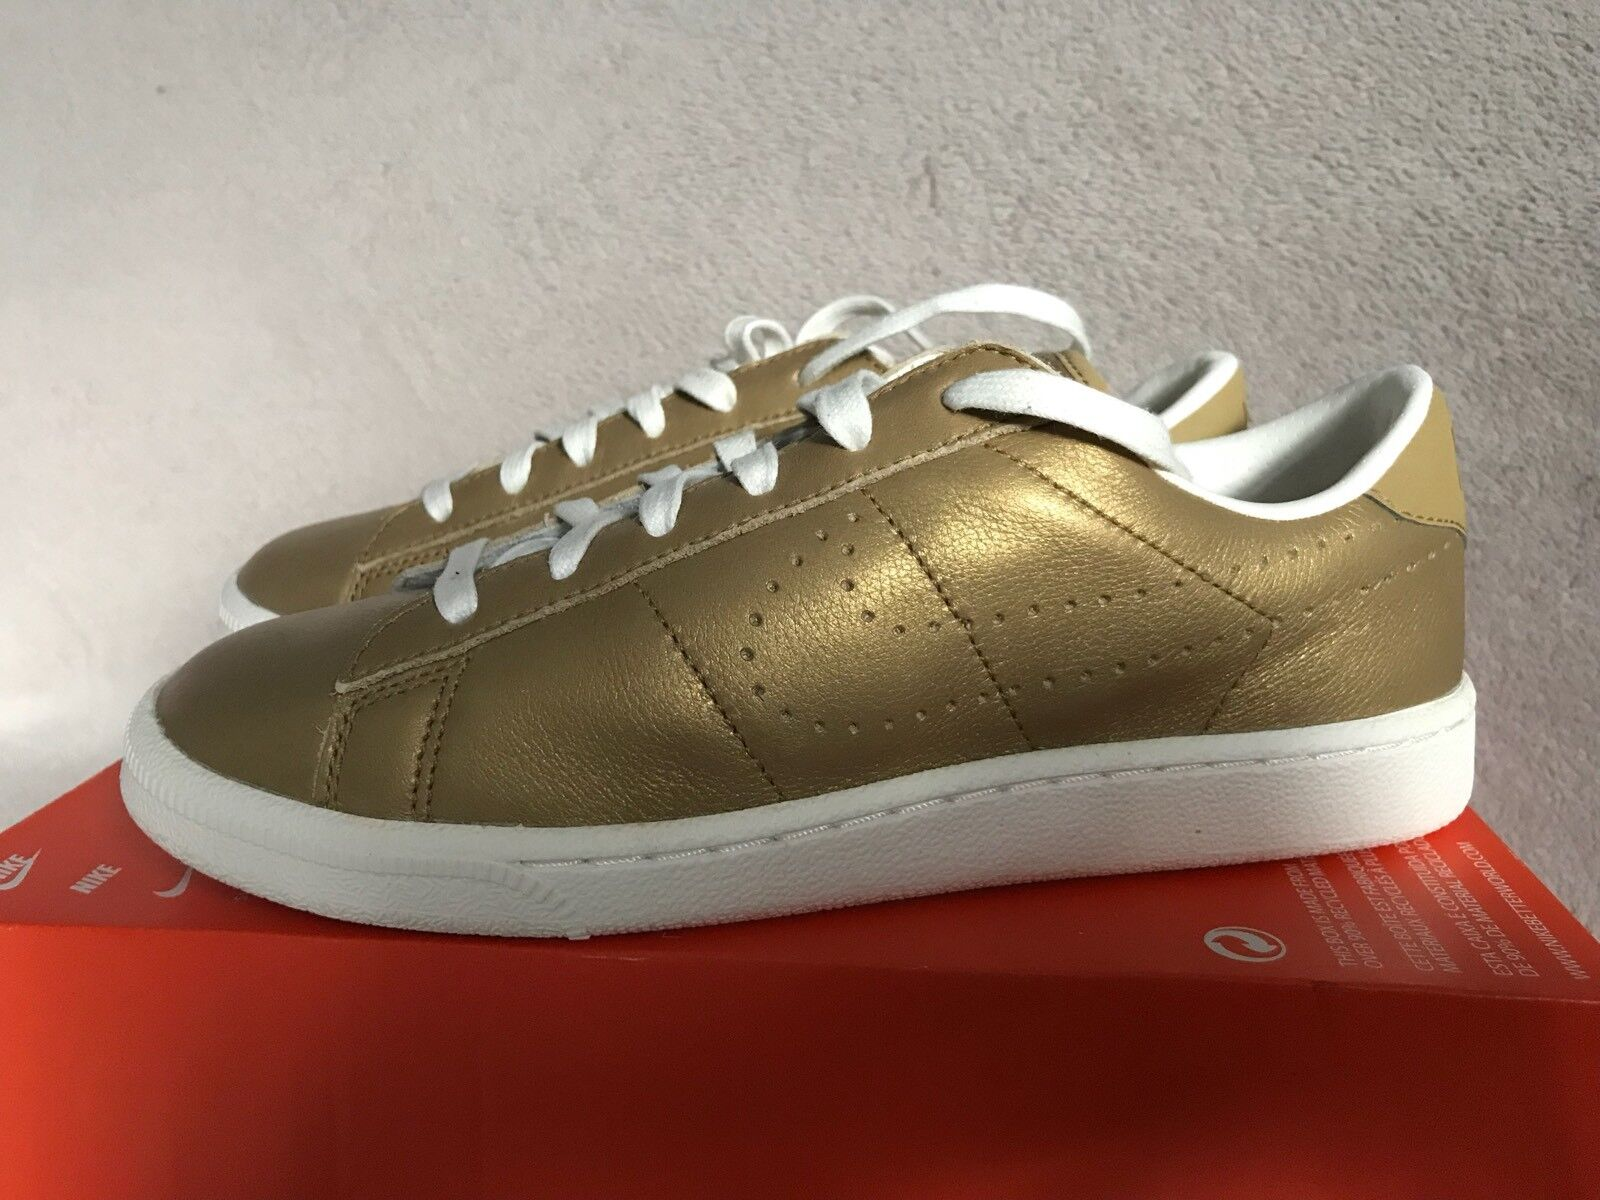 Nike Tennis Classic Premium Or baskets femme Taille UK5.5 EUR 38.5